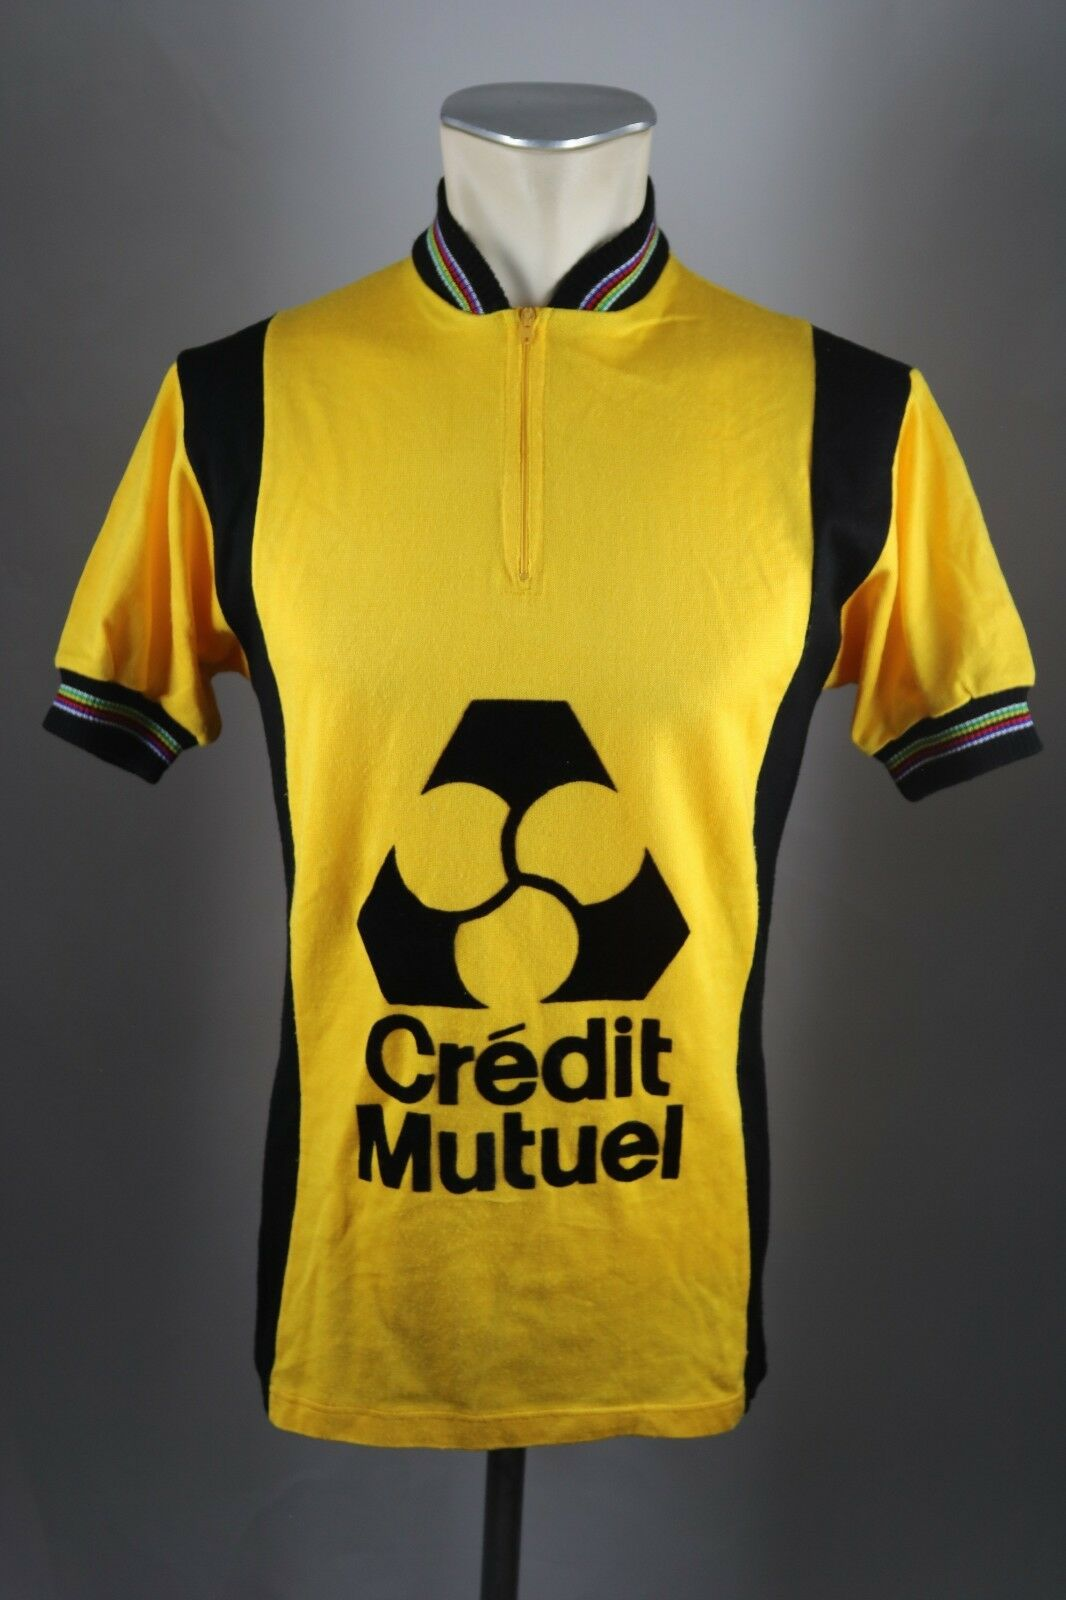 Vintage Radtrikot Credit Mutuel Gr. M  50cm cycling jersey Acrylic Wool Shirt F3  perfect